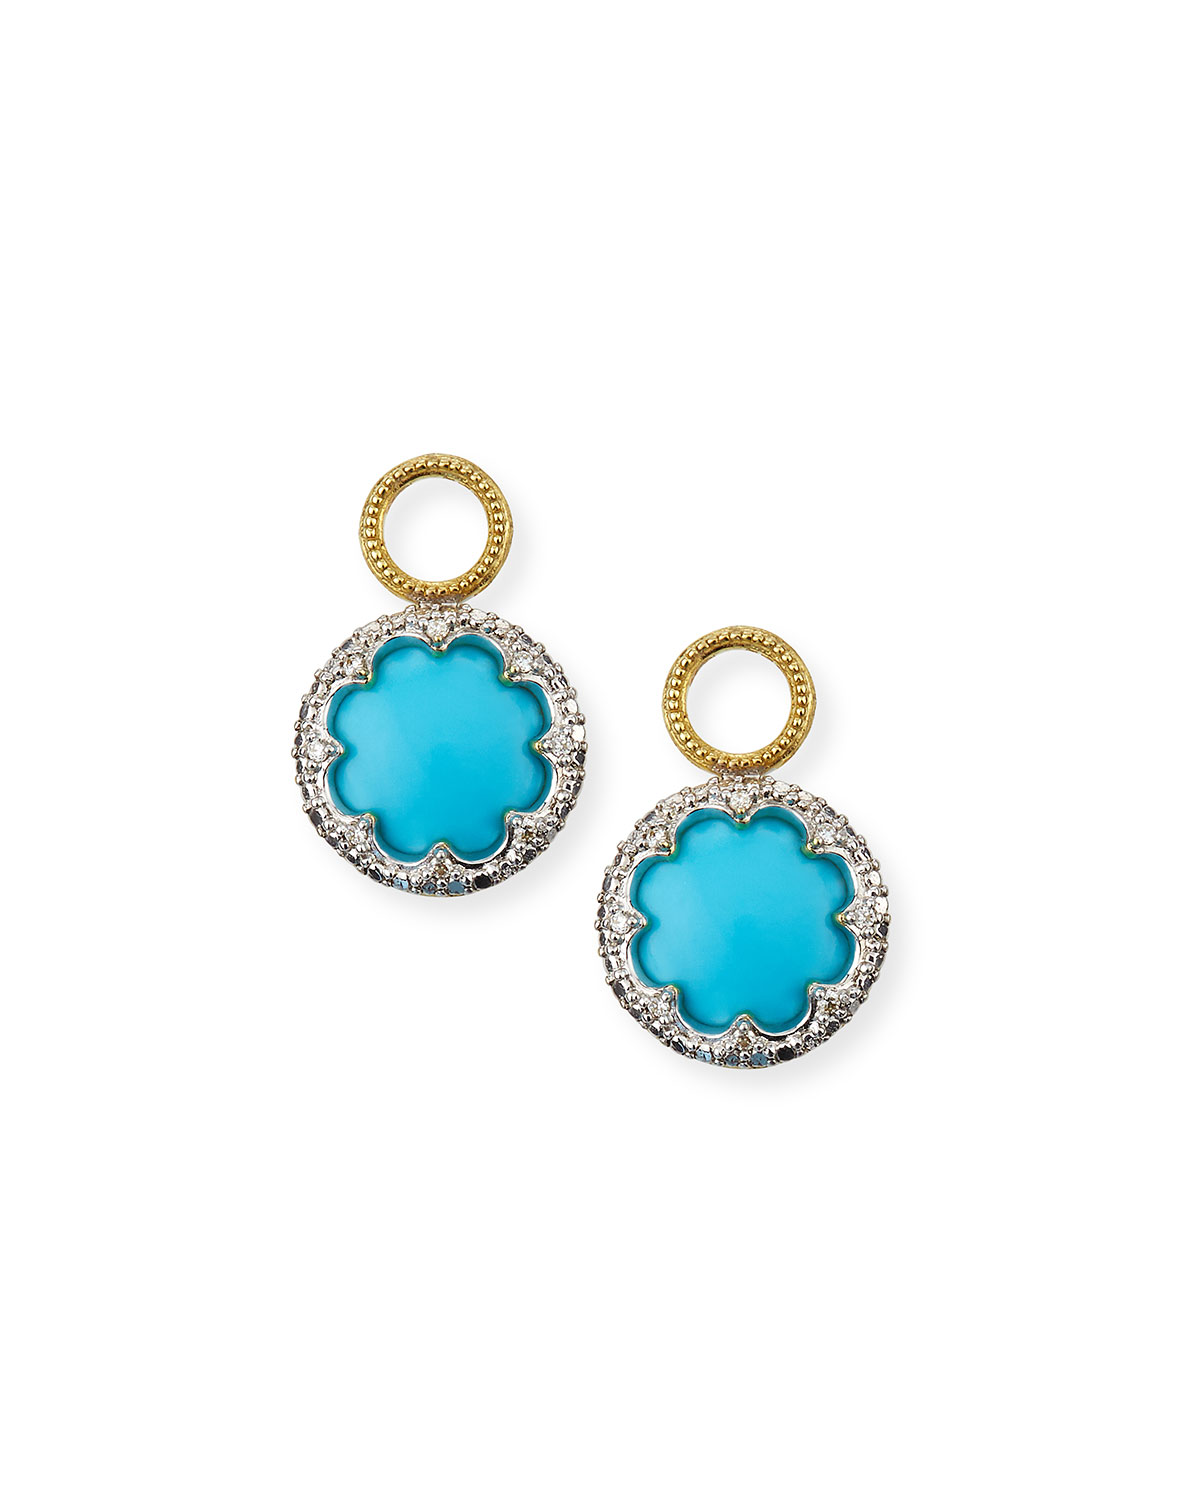 Provence 18k Round Earring Charms w/ Pave